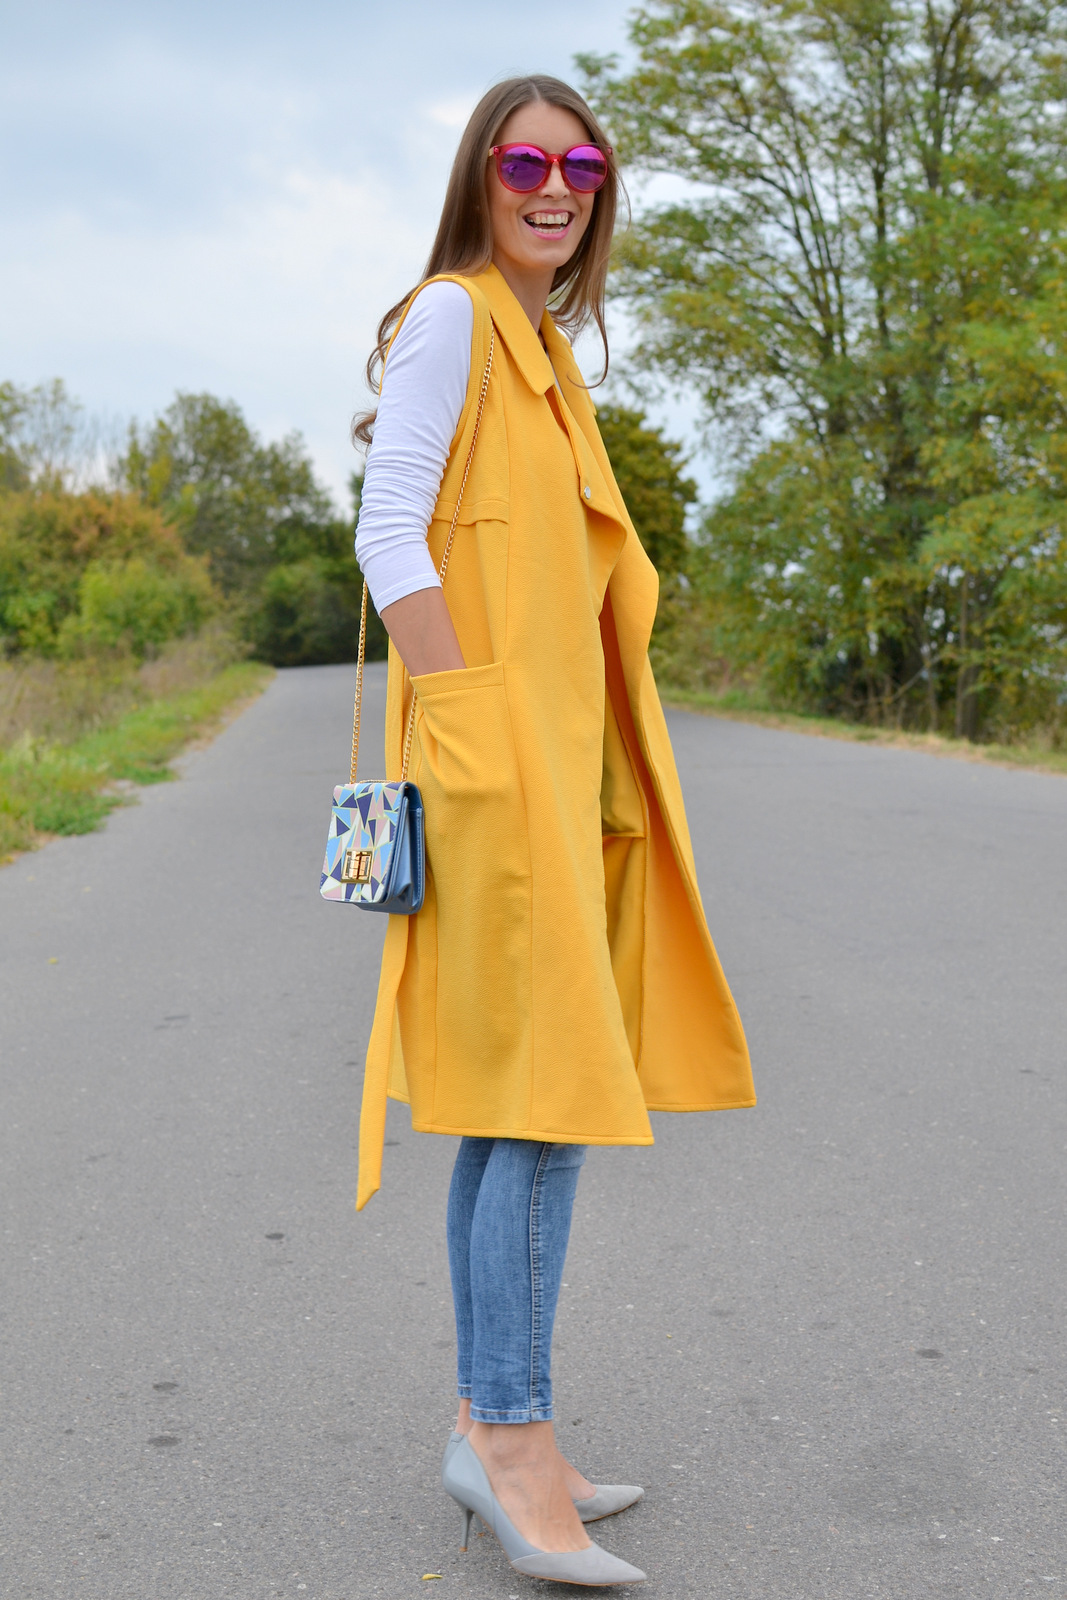 http://www.mademoiselleiva.com/2016/10/yellow-long-vest-geometric-pattern-bag.html